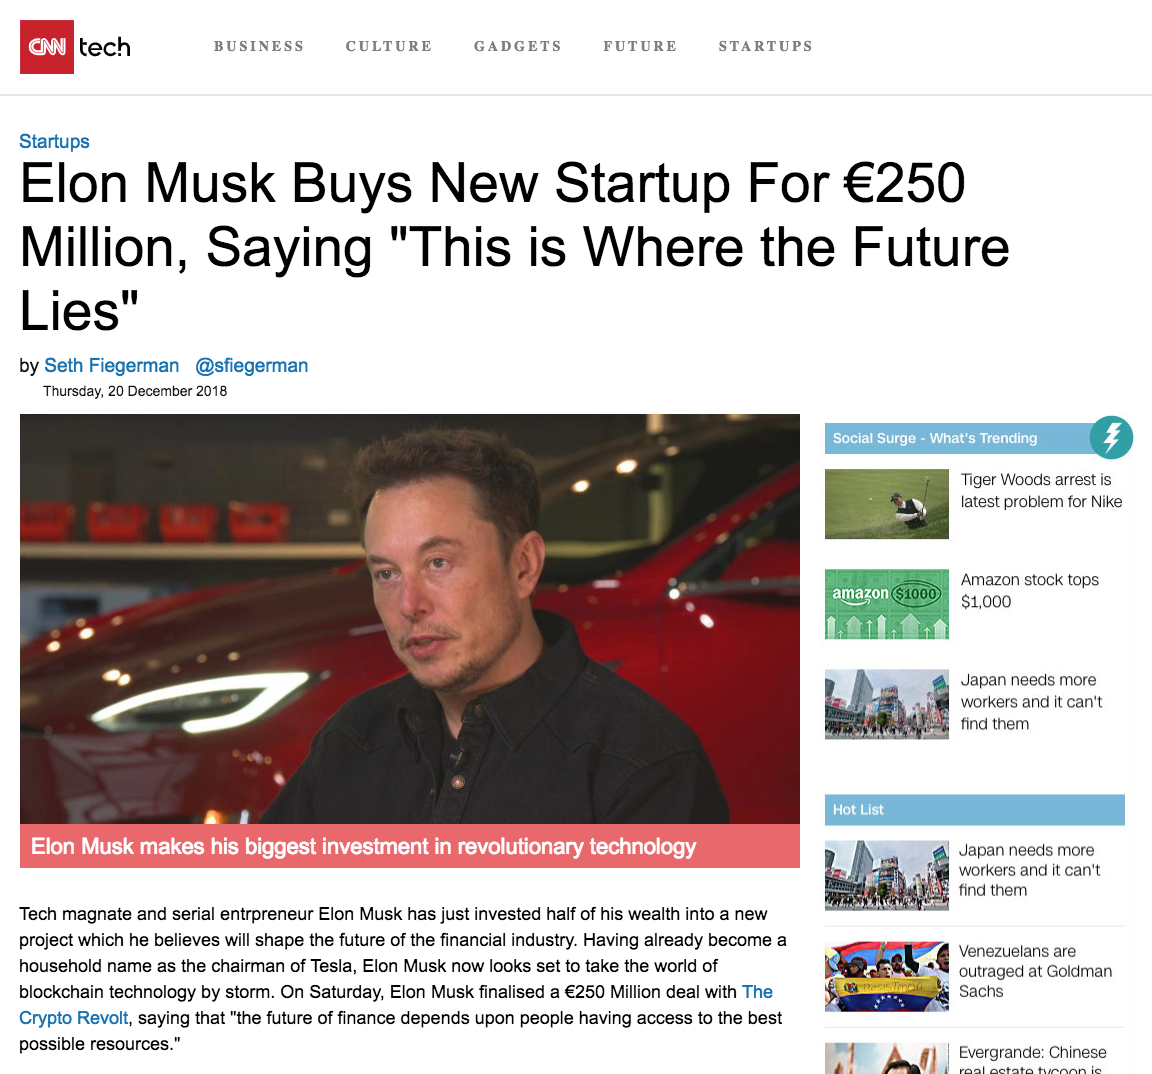 False news article about Elon Musk.